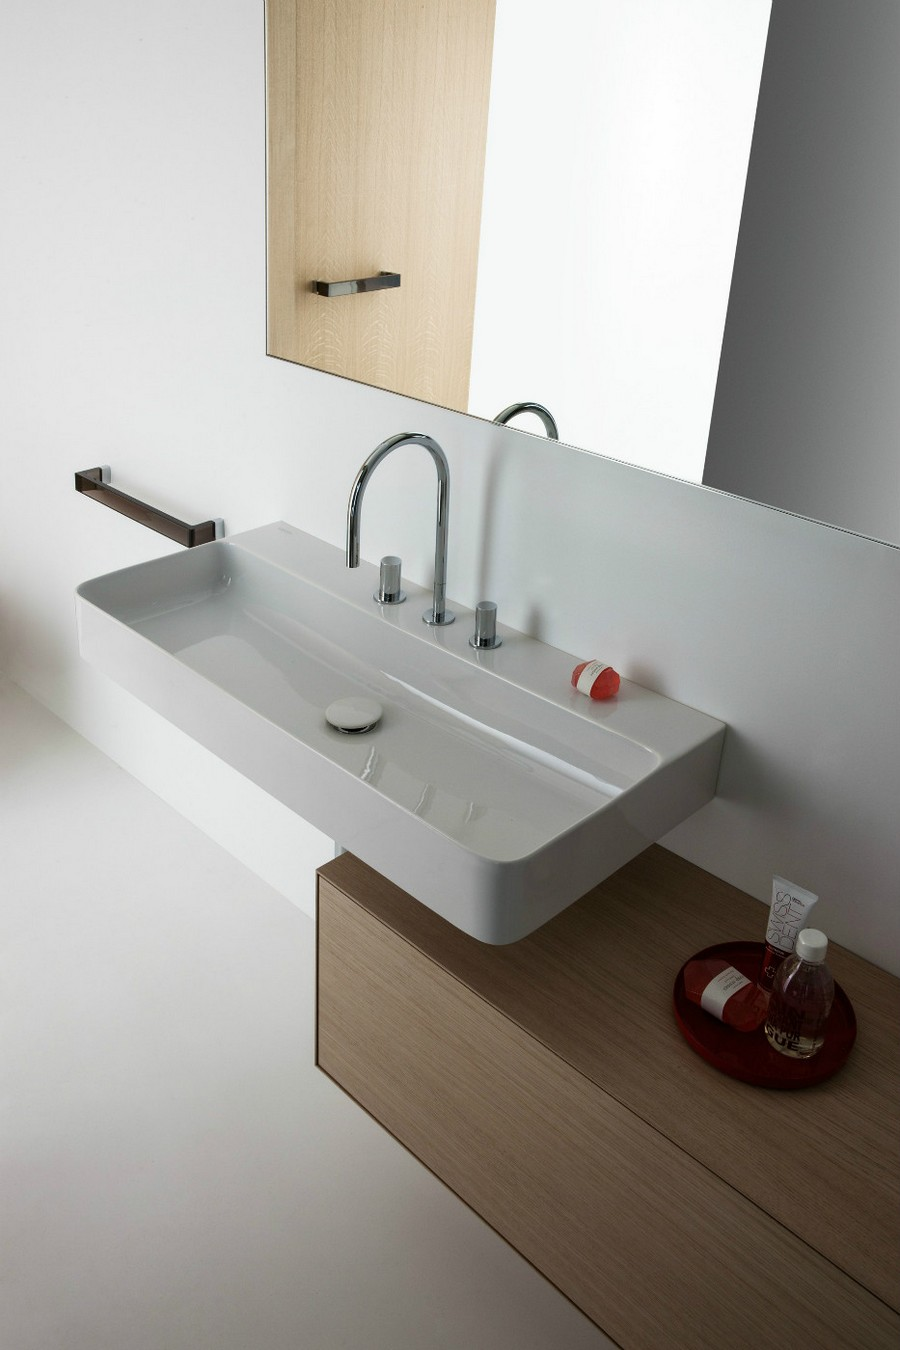 7-3-Laufen-beige-bathroom-interior-design-wash-basin-vanity-unit-wall-mounted-wooden-cabinet-mirror-rectangular-sink-towel-holder